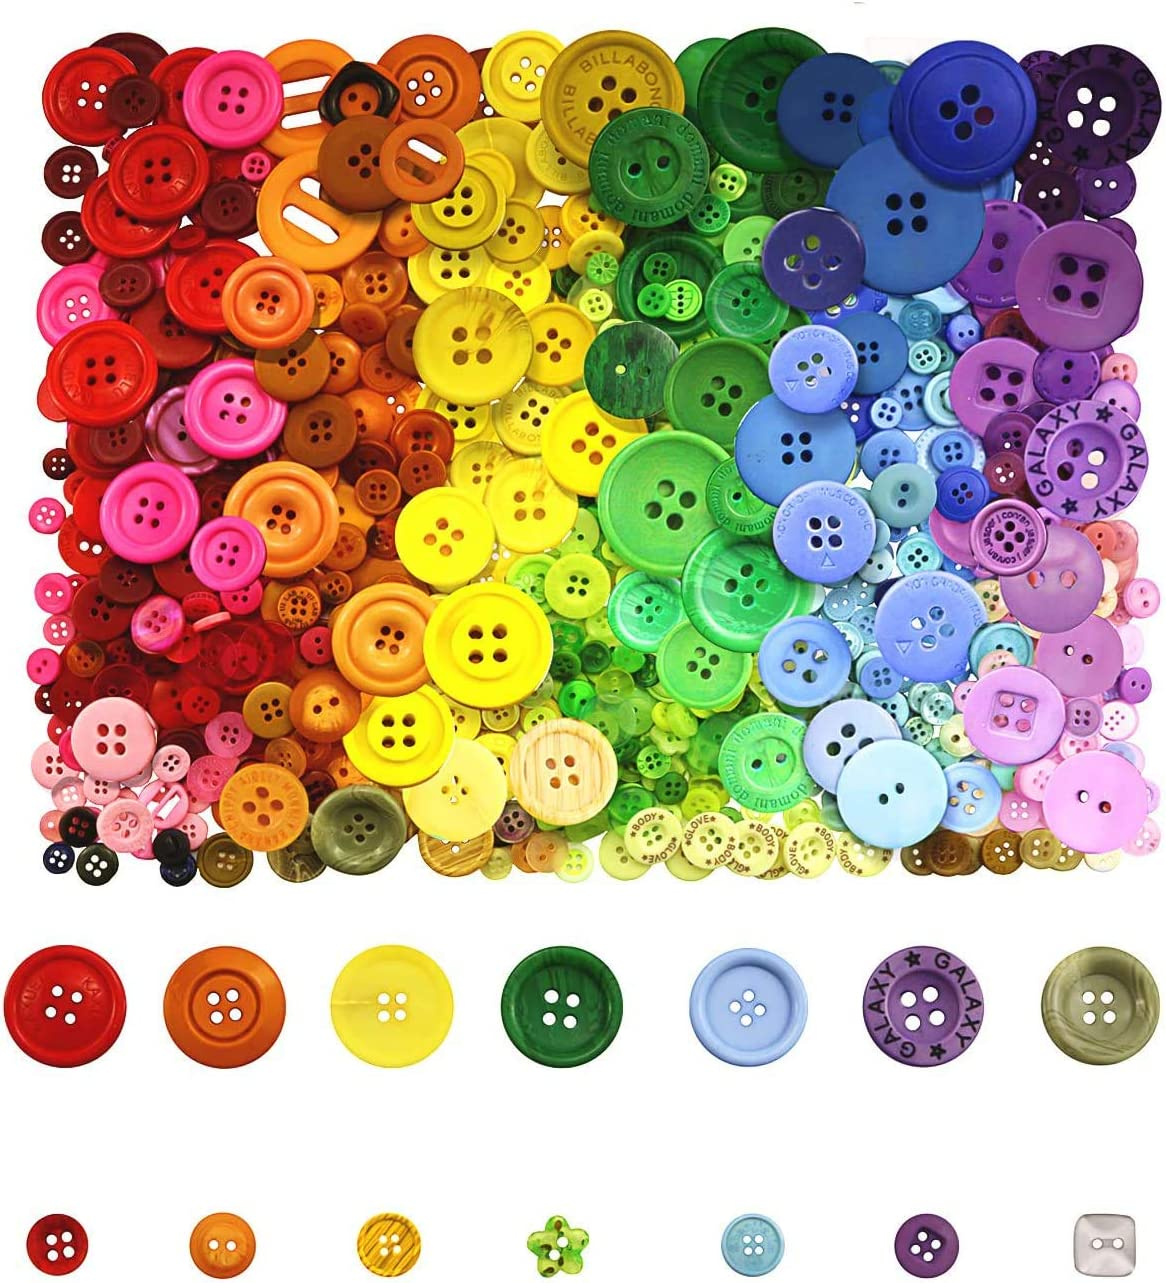 34 or 20 mm 58 or 16 mm Bright Coloured Star Buttons 6  Star Buttons Sewing or Craft Supplies